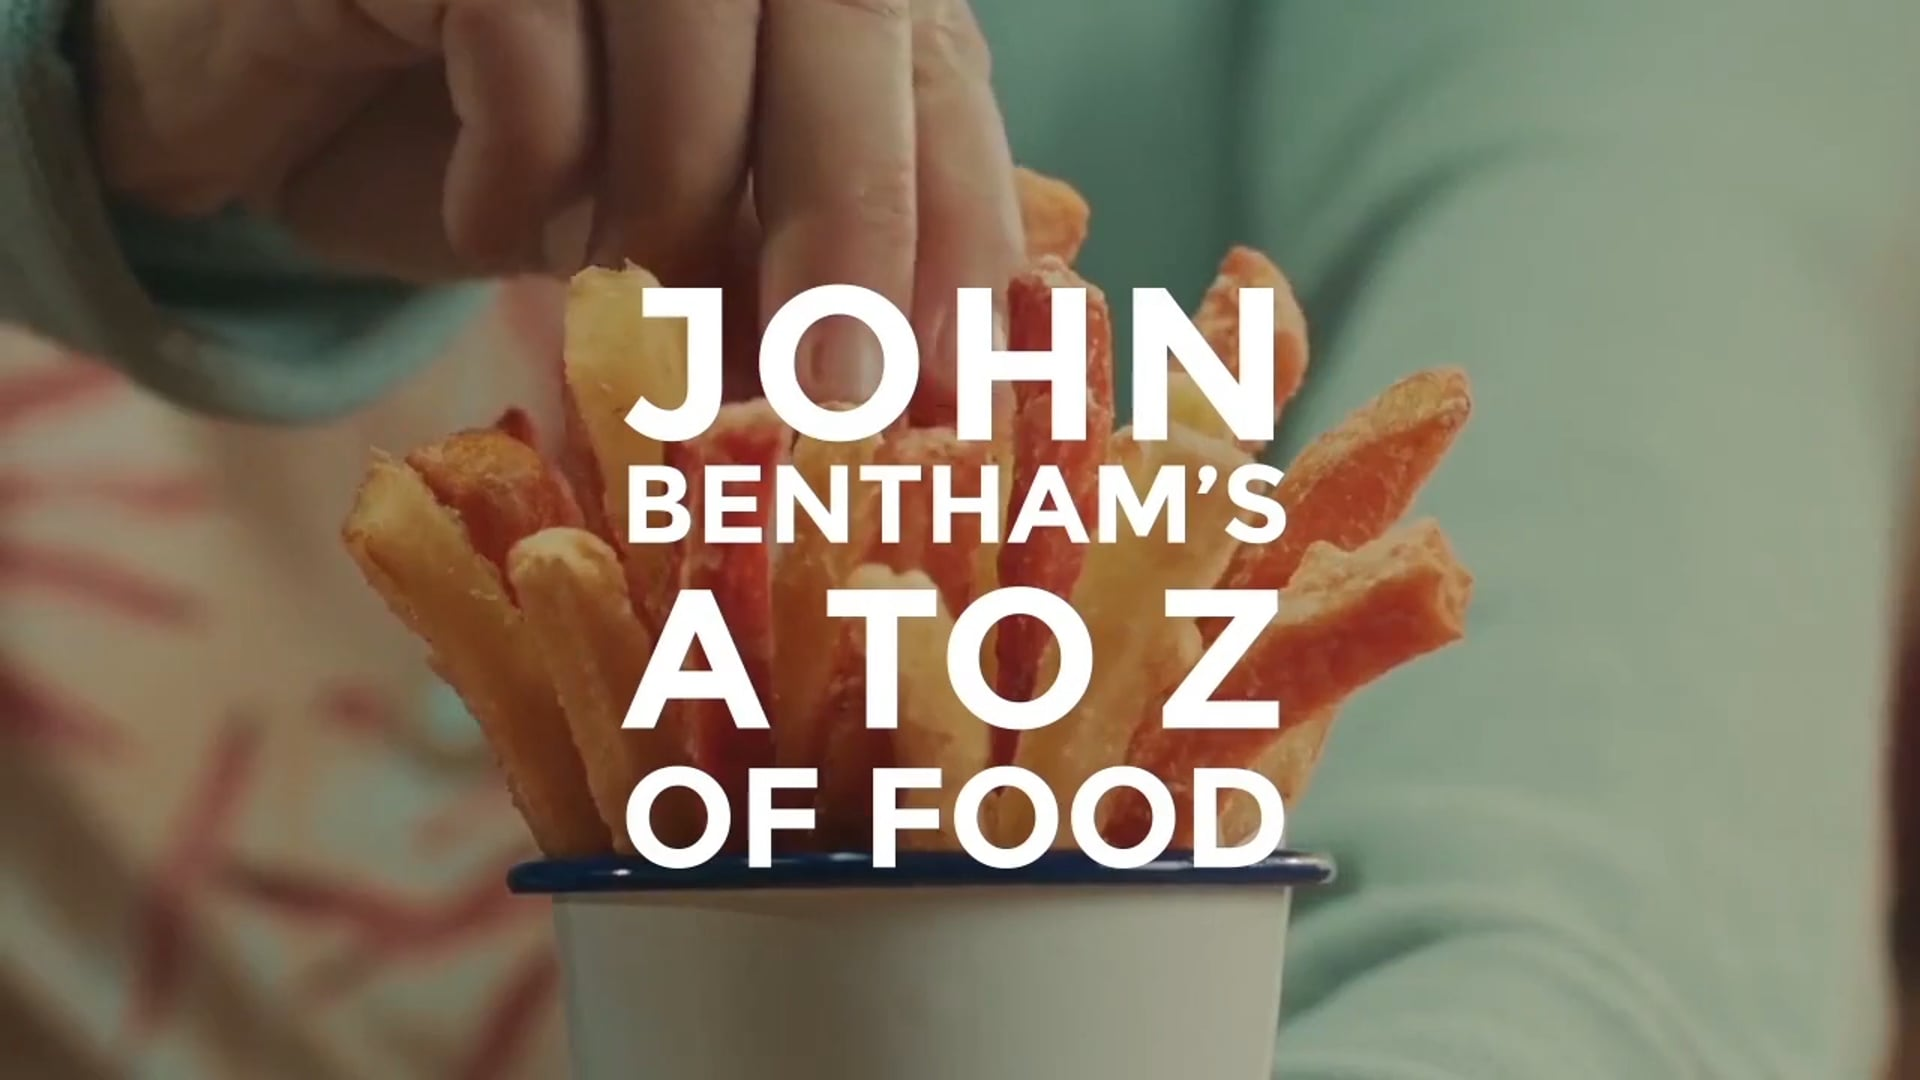 A TO Z OF FOOD